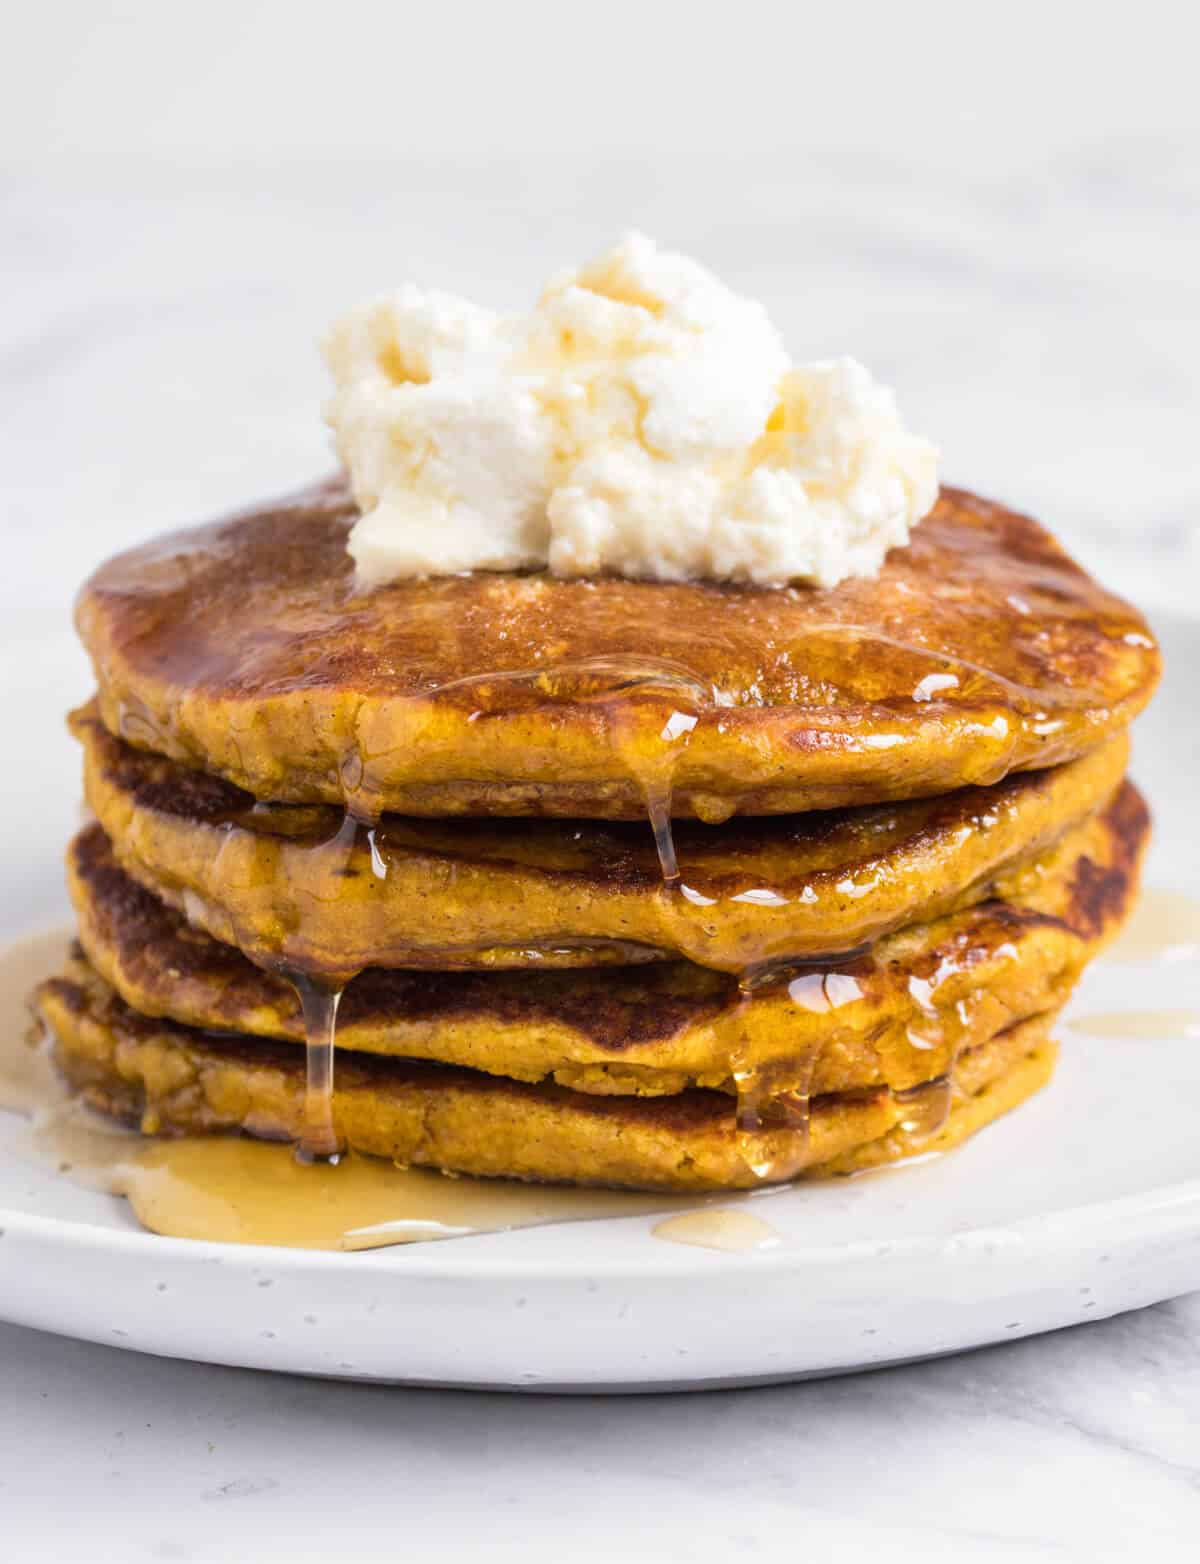 Pumpkin pancakes topped with ricotta and syrup